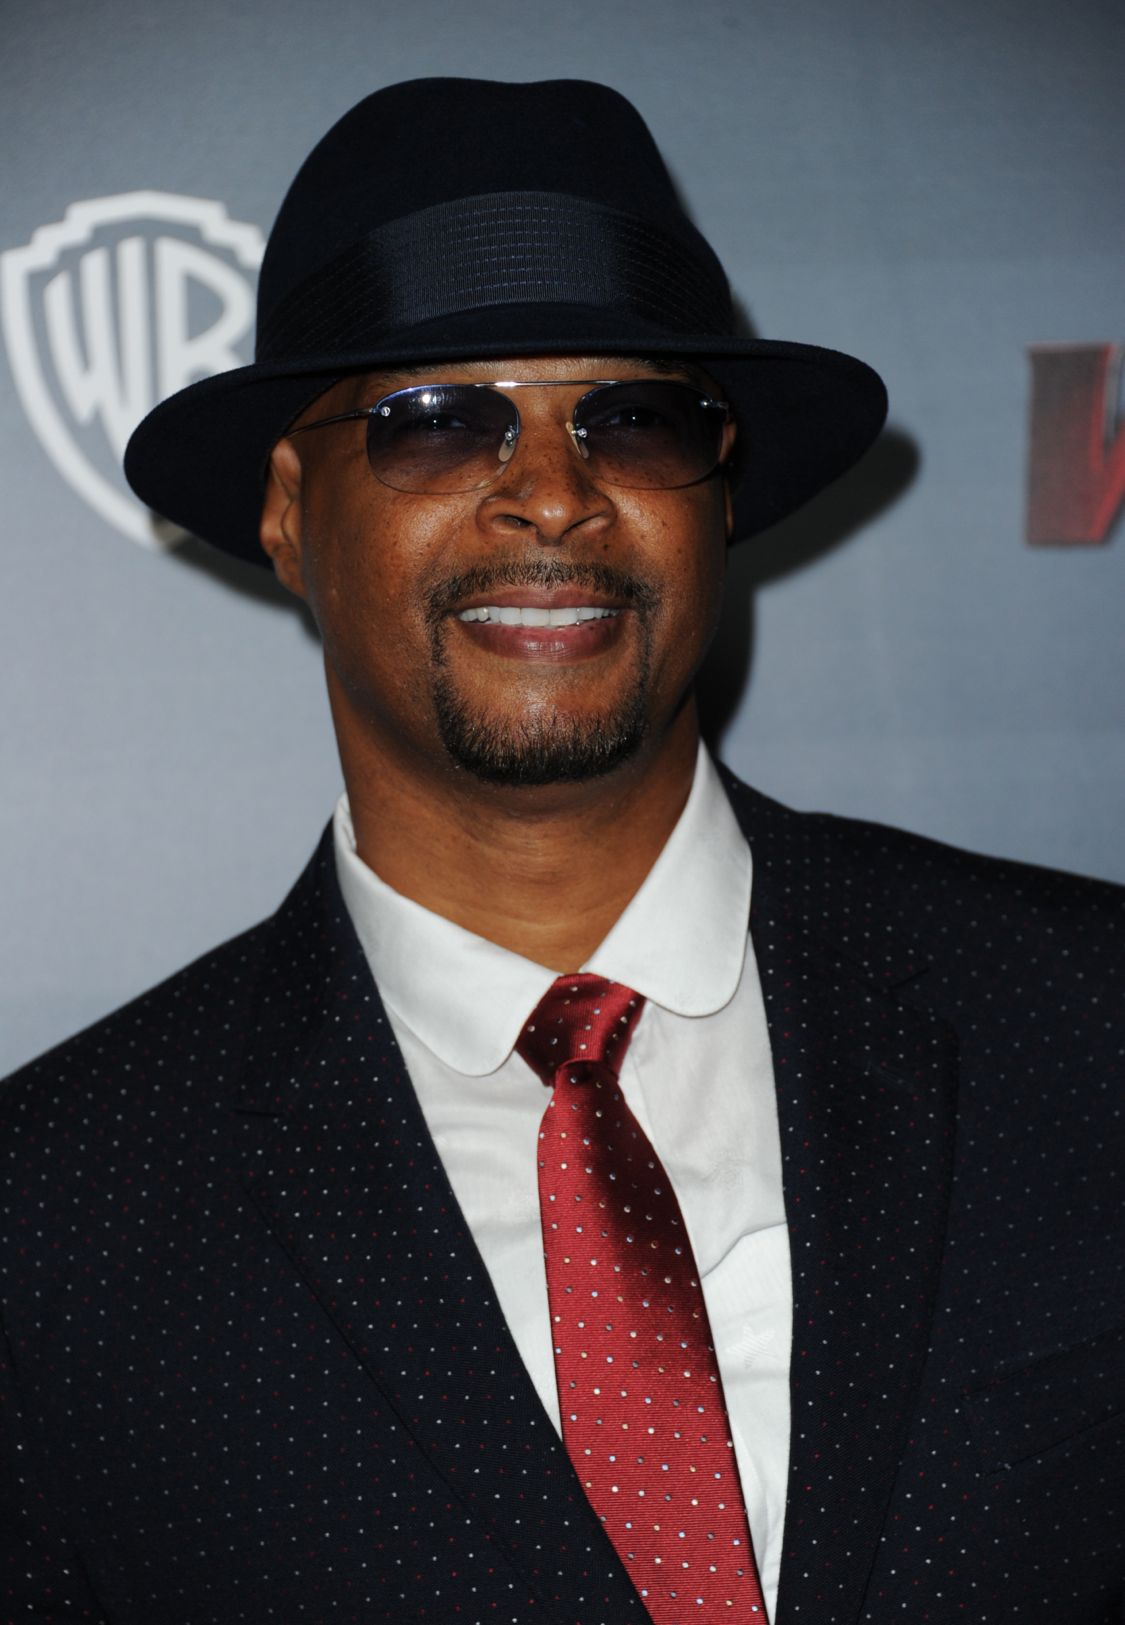 LETHAL WEAPON: Damon Wayans celebrates the LETHAL WEAPON premiere party at NeueHouse Hollywood on Monday, Sept. 12, in Los Angeles, CA, sponsored by Ford. LETHAL WEAPON premieres Wednesday, Sept. 21 (8:00-9:00 PM ET/PT) on FOX. ©2016 Fox Broadcasting Co. CR: Frank Micelotta/FOX